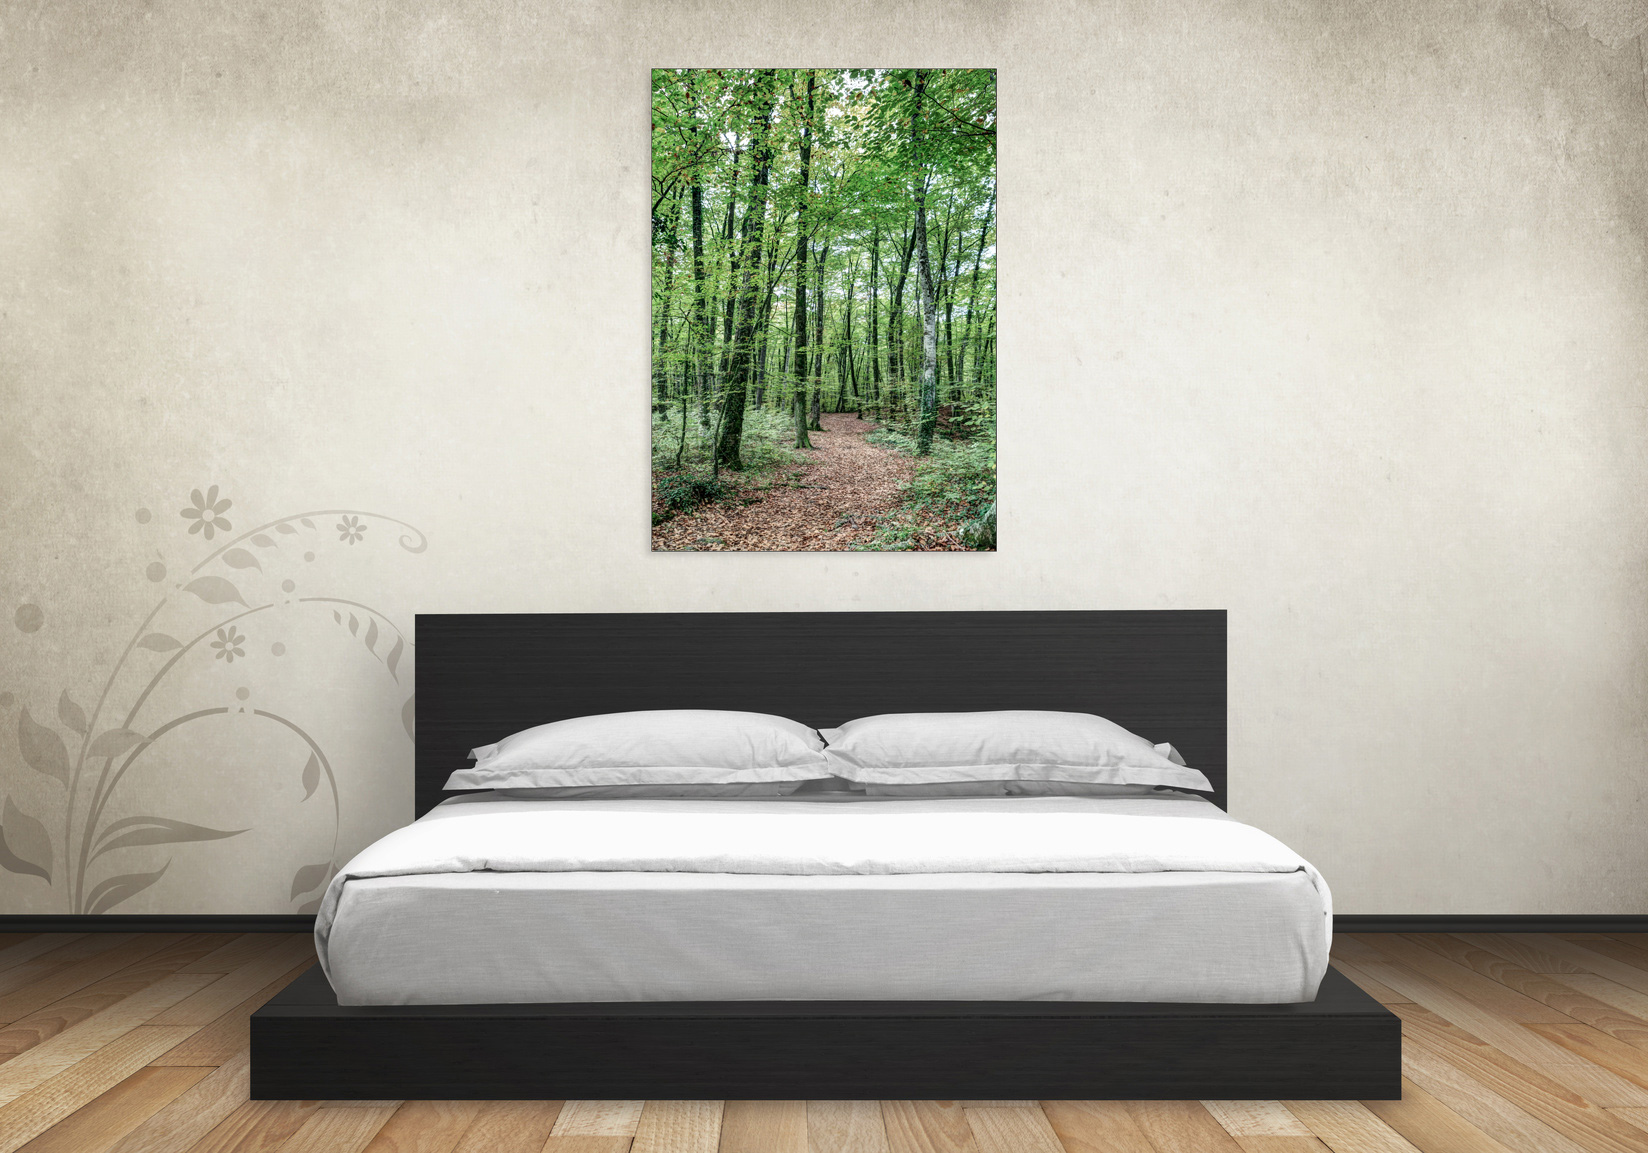 Path Between Trees - Canvas in a Bedroom